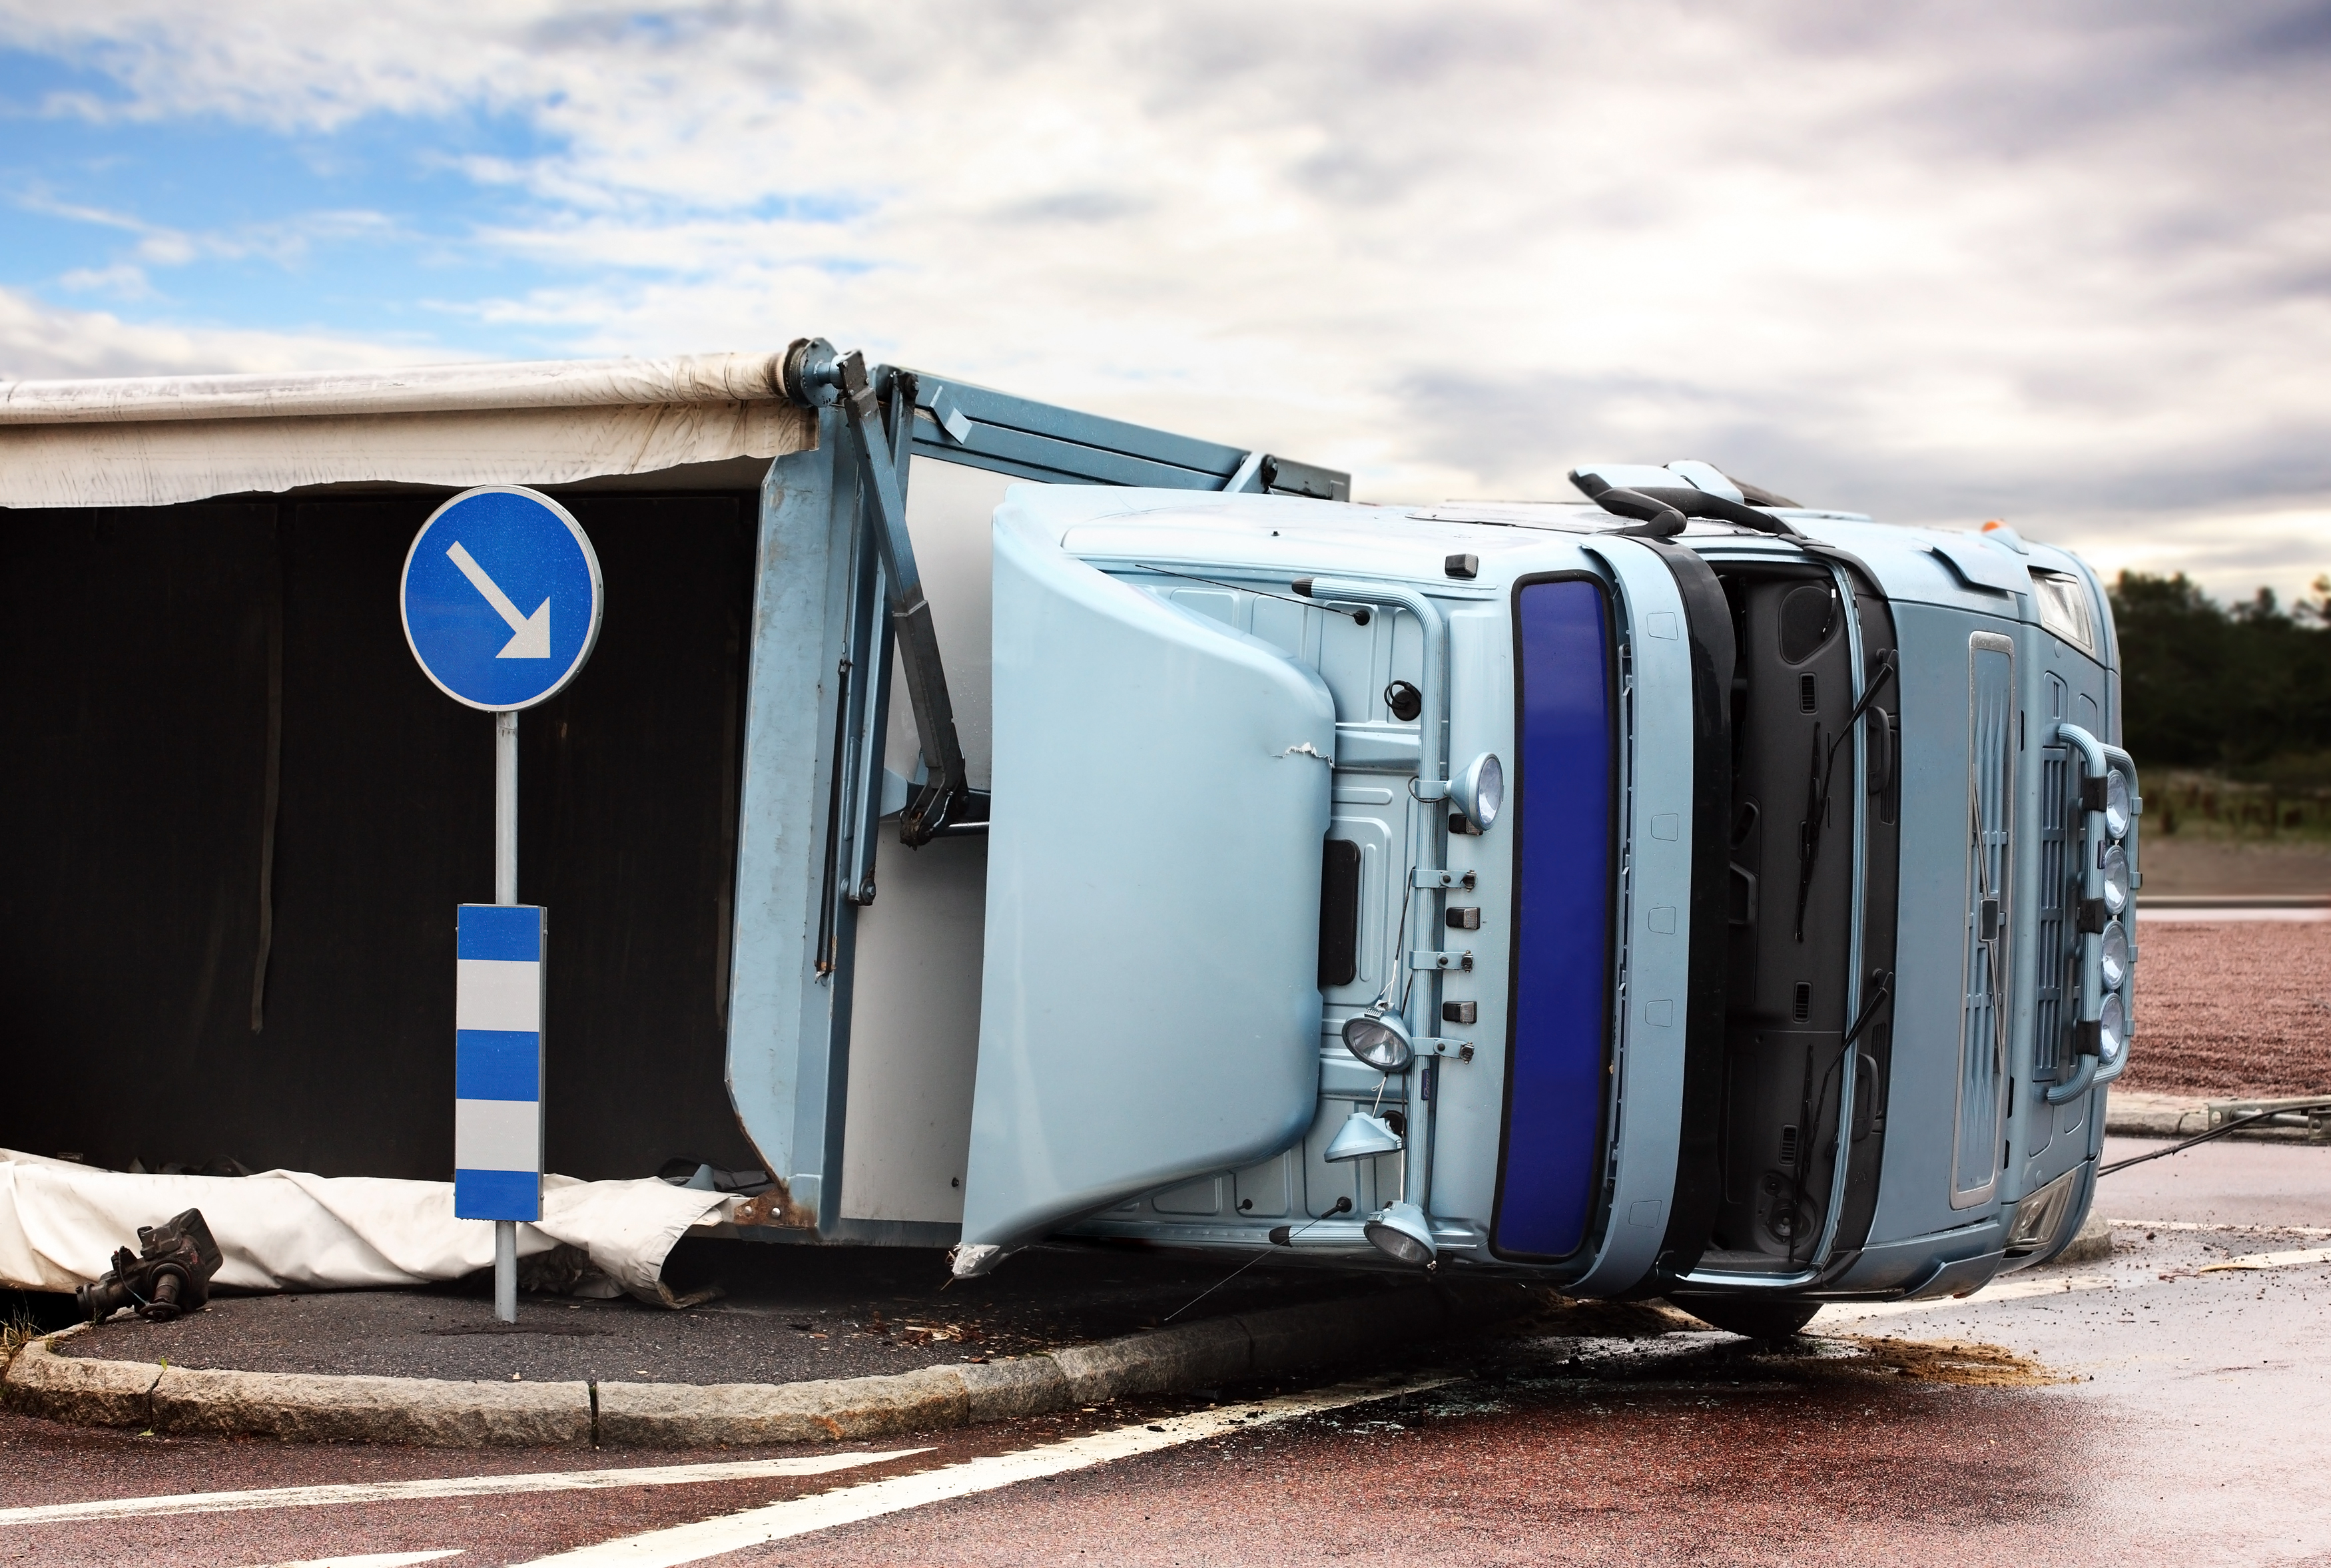 If I'm in a Wisconsin Truck Accident, Who is Responsible for My Injuries?